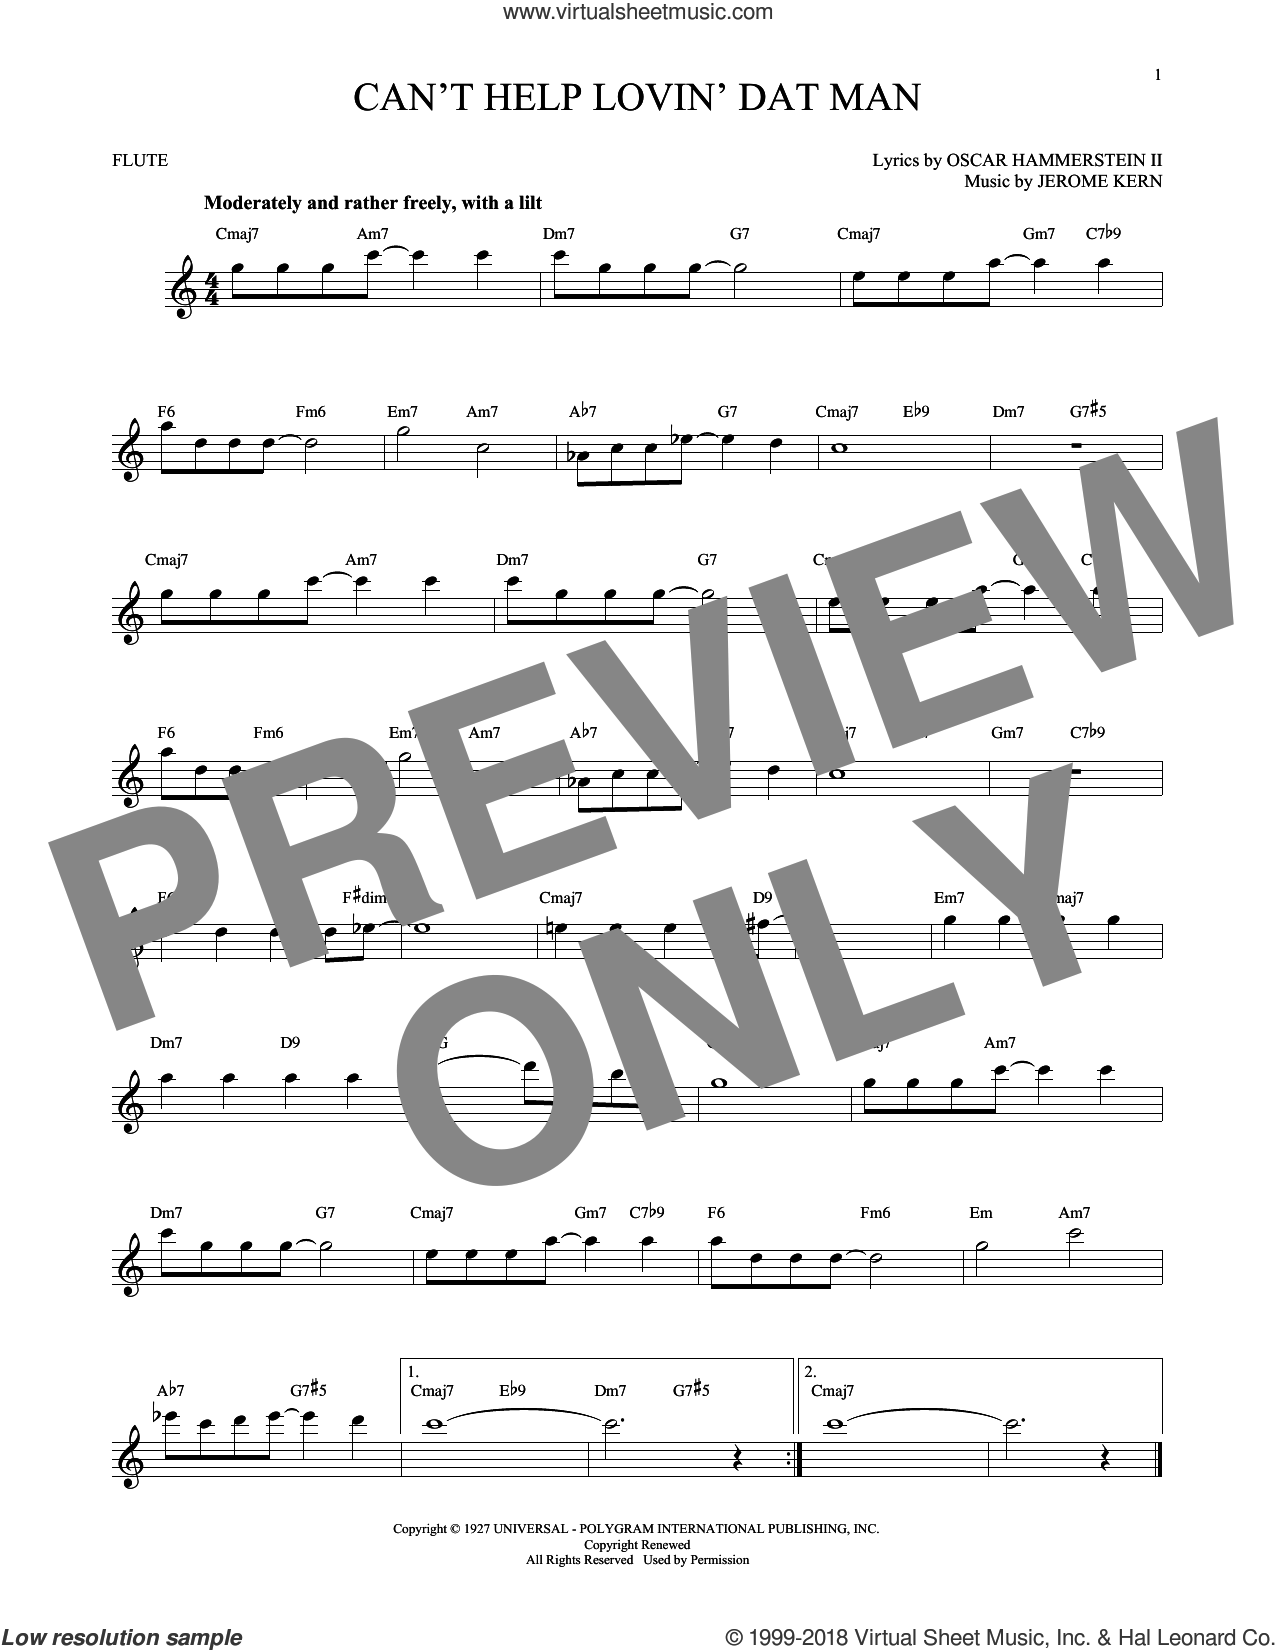 Can't Help Lovin' Dat Man sheet music for flute solo by Oscar II Hammerstein, Helen Morgan and Jerome Kern. Score Image Preview.